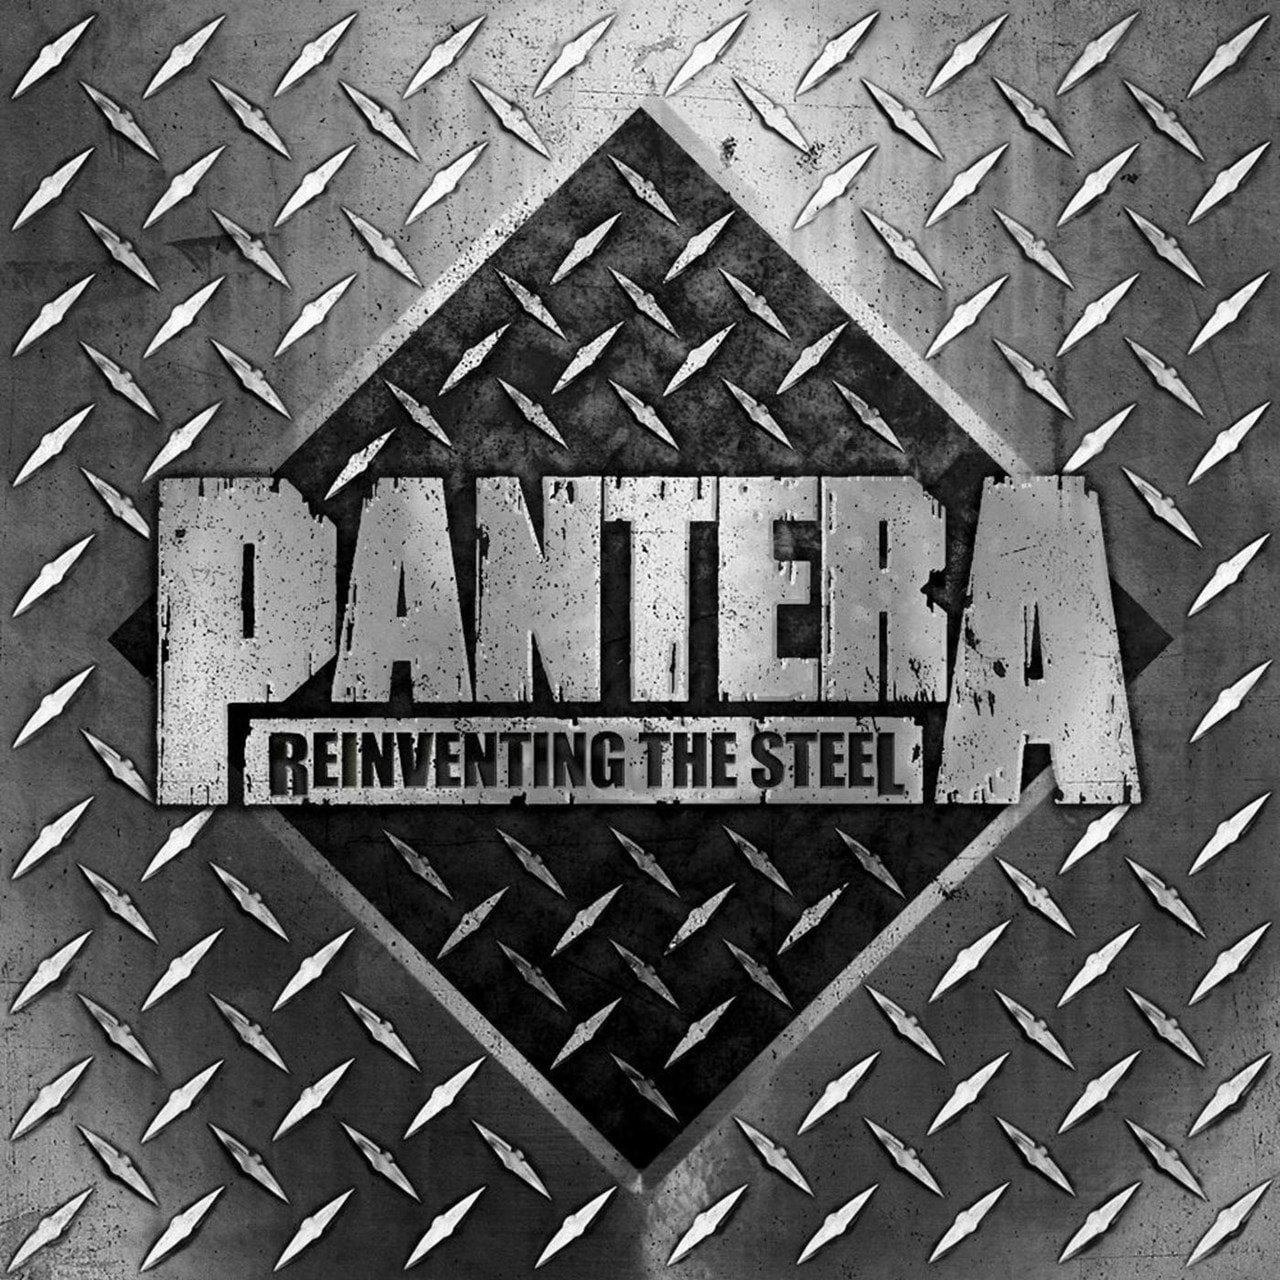 Reinventing the Steel - 1